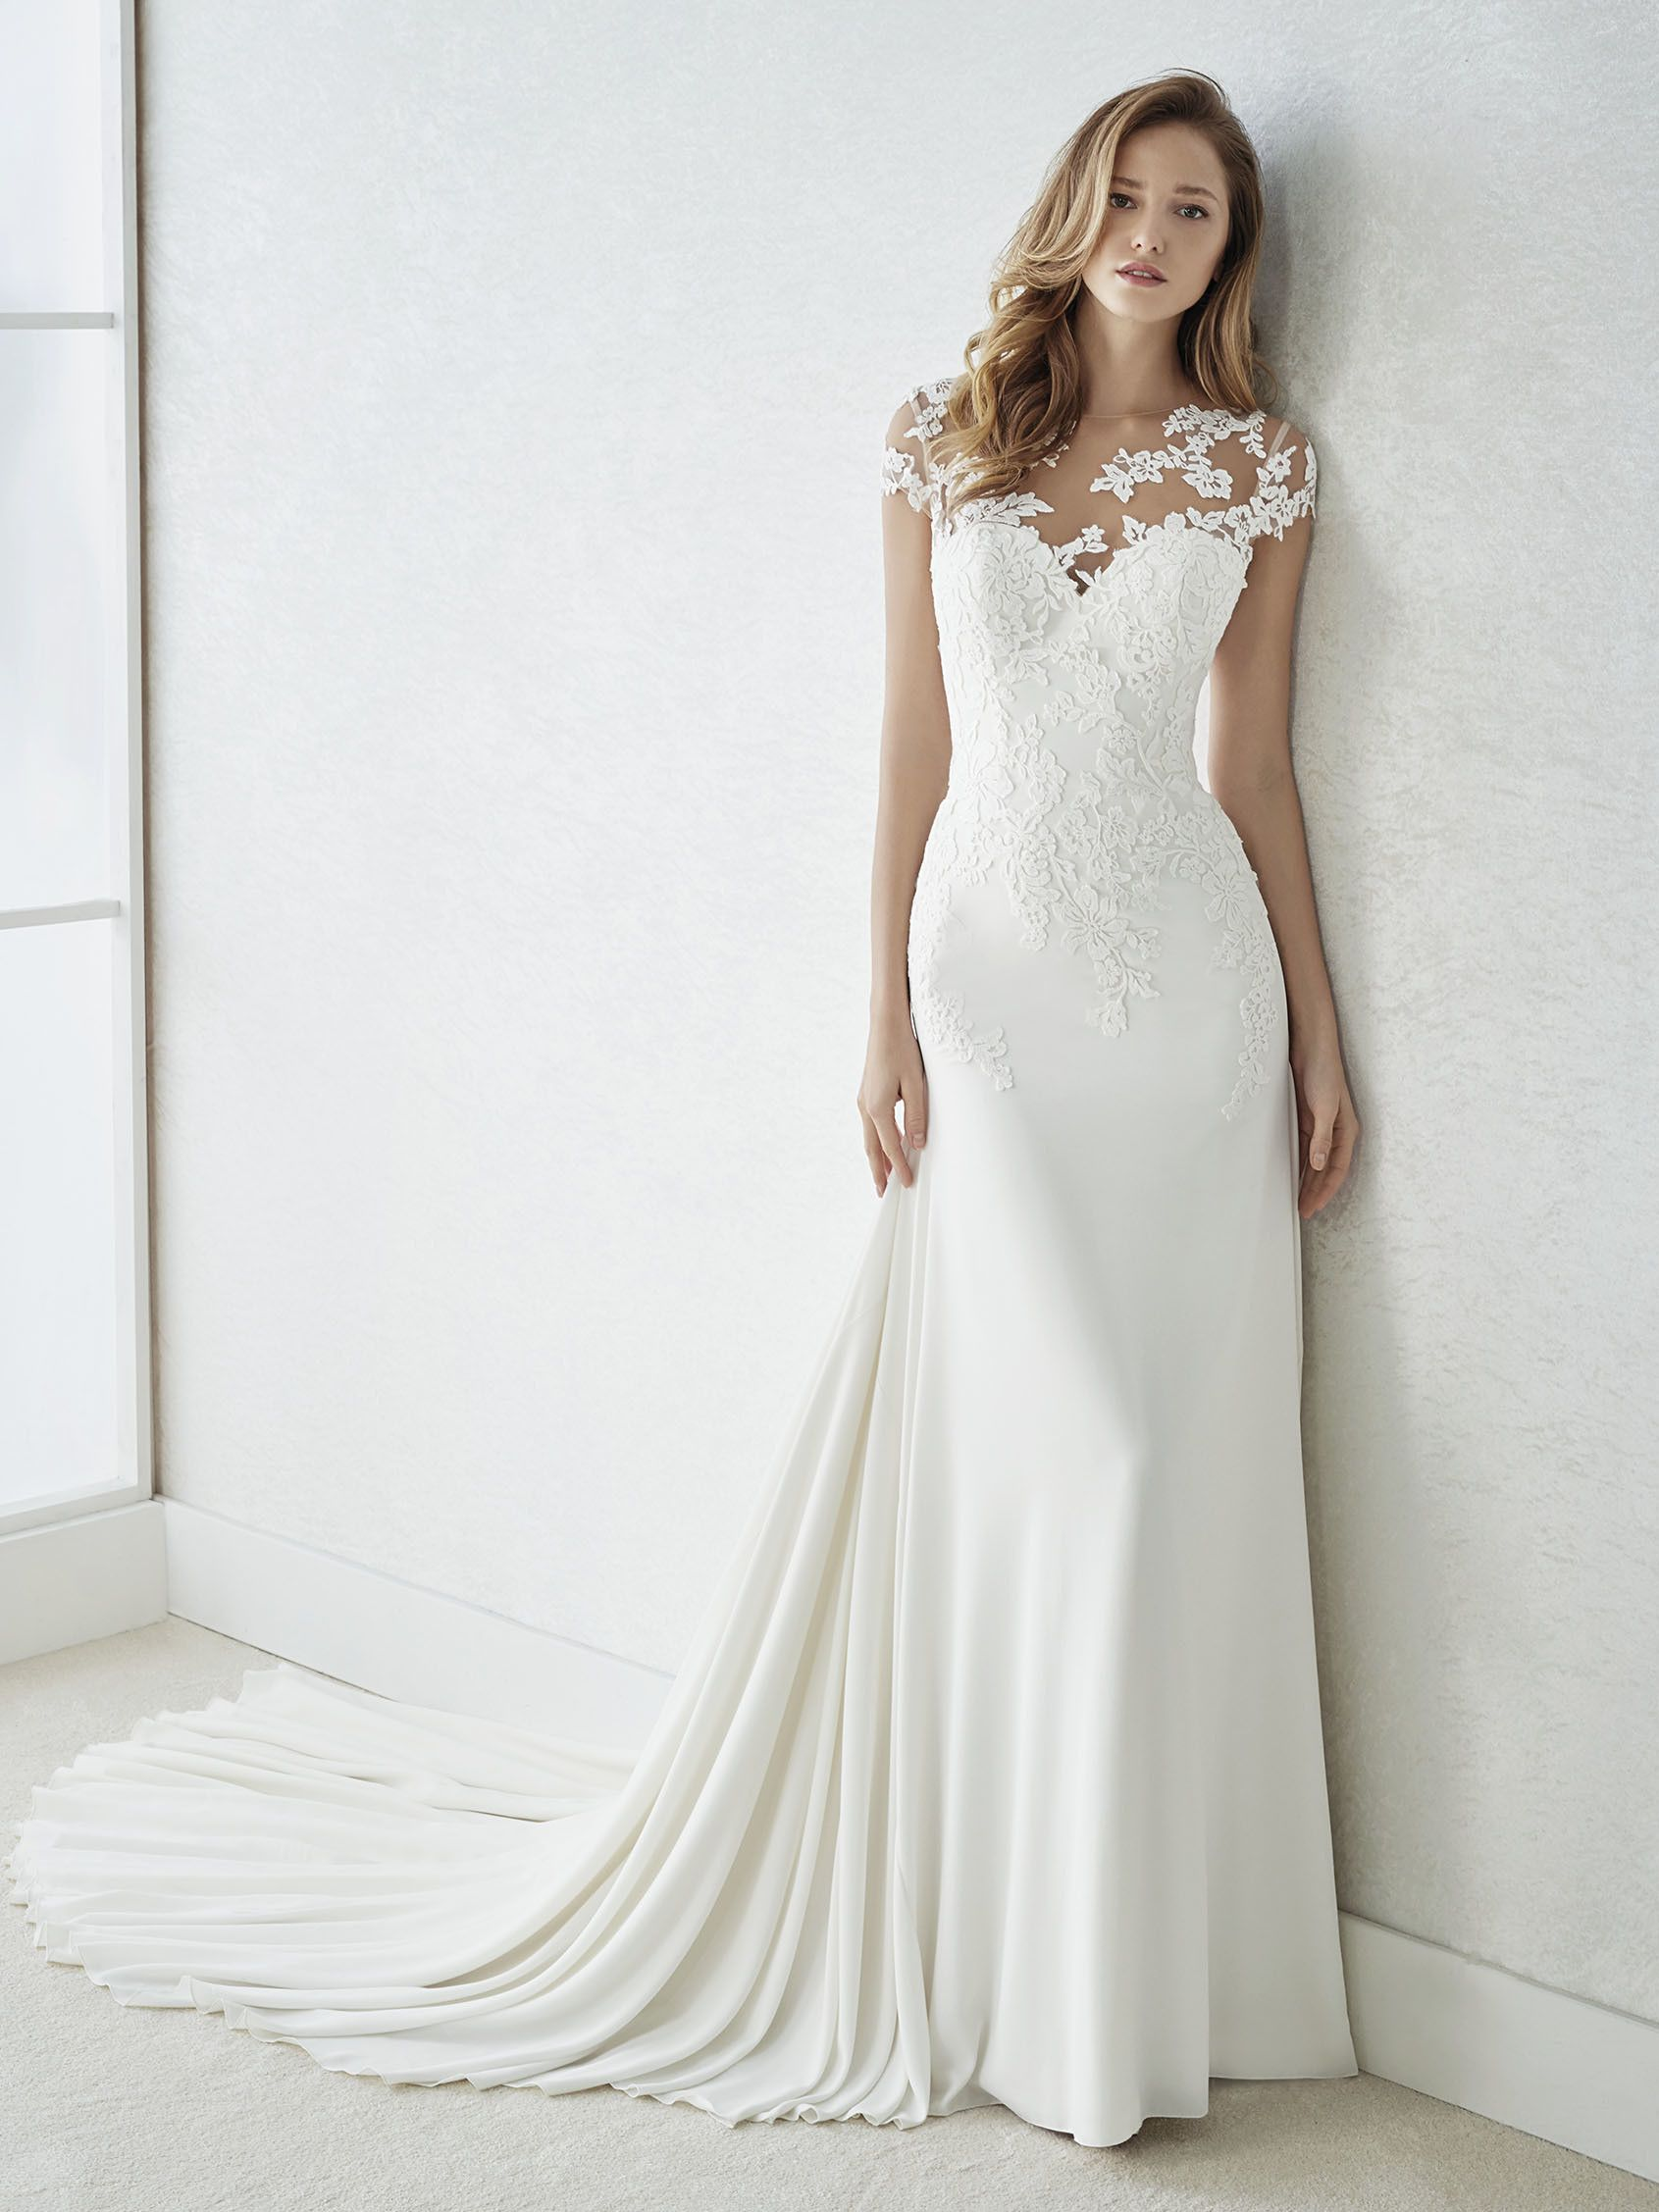 Finlandia Short Sleeve Wedding Dress With Very Sexy Illusions St